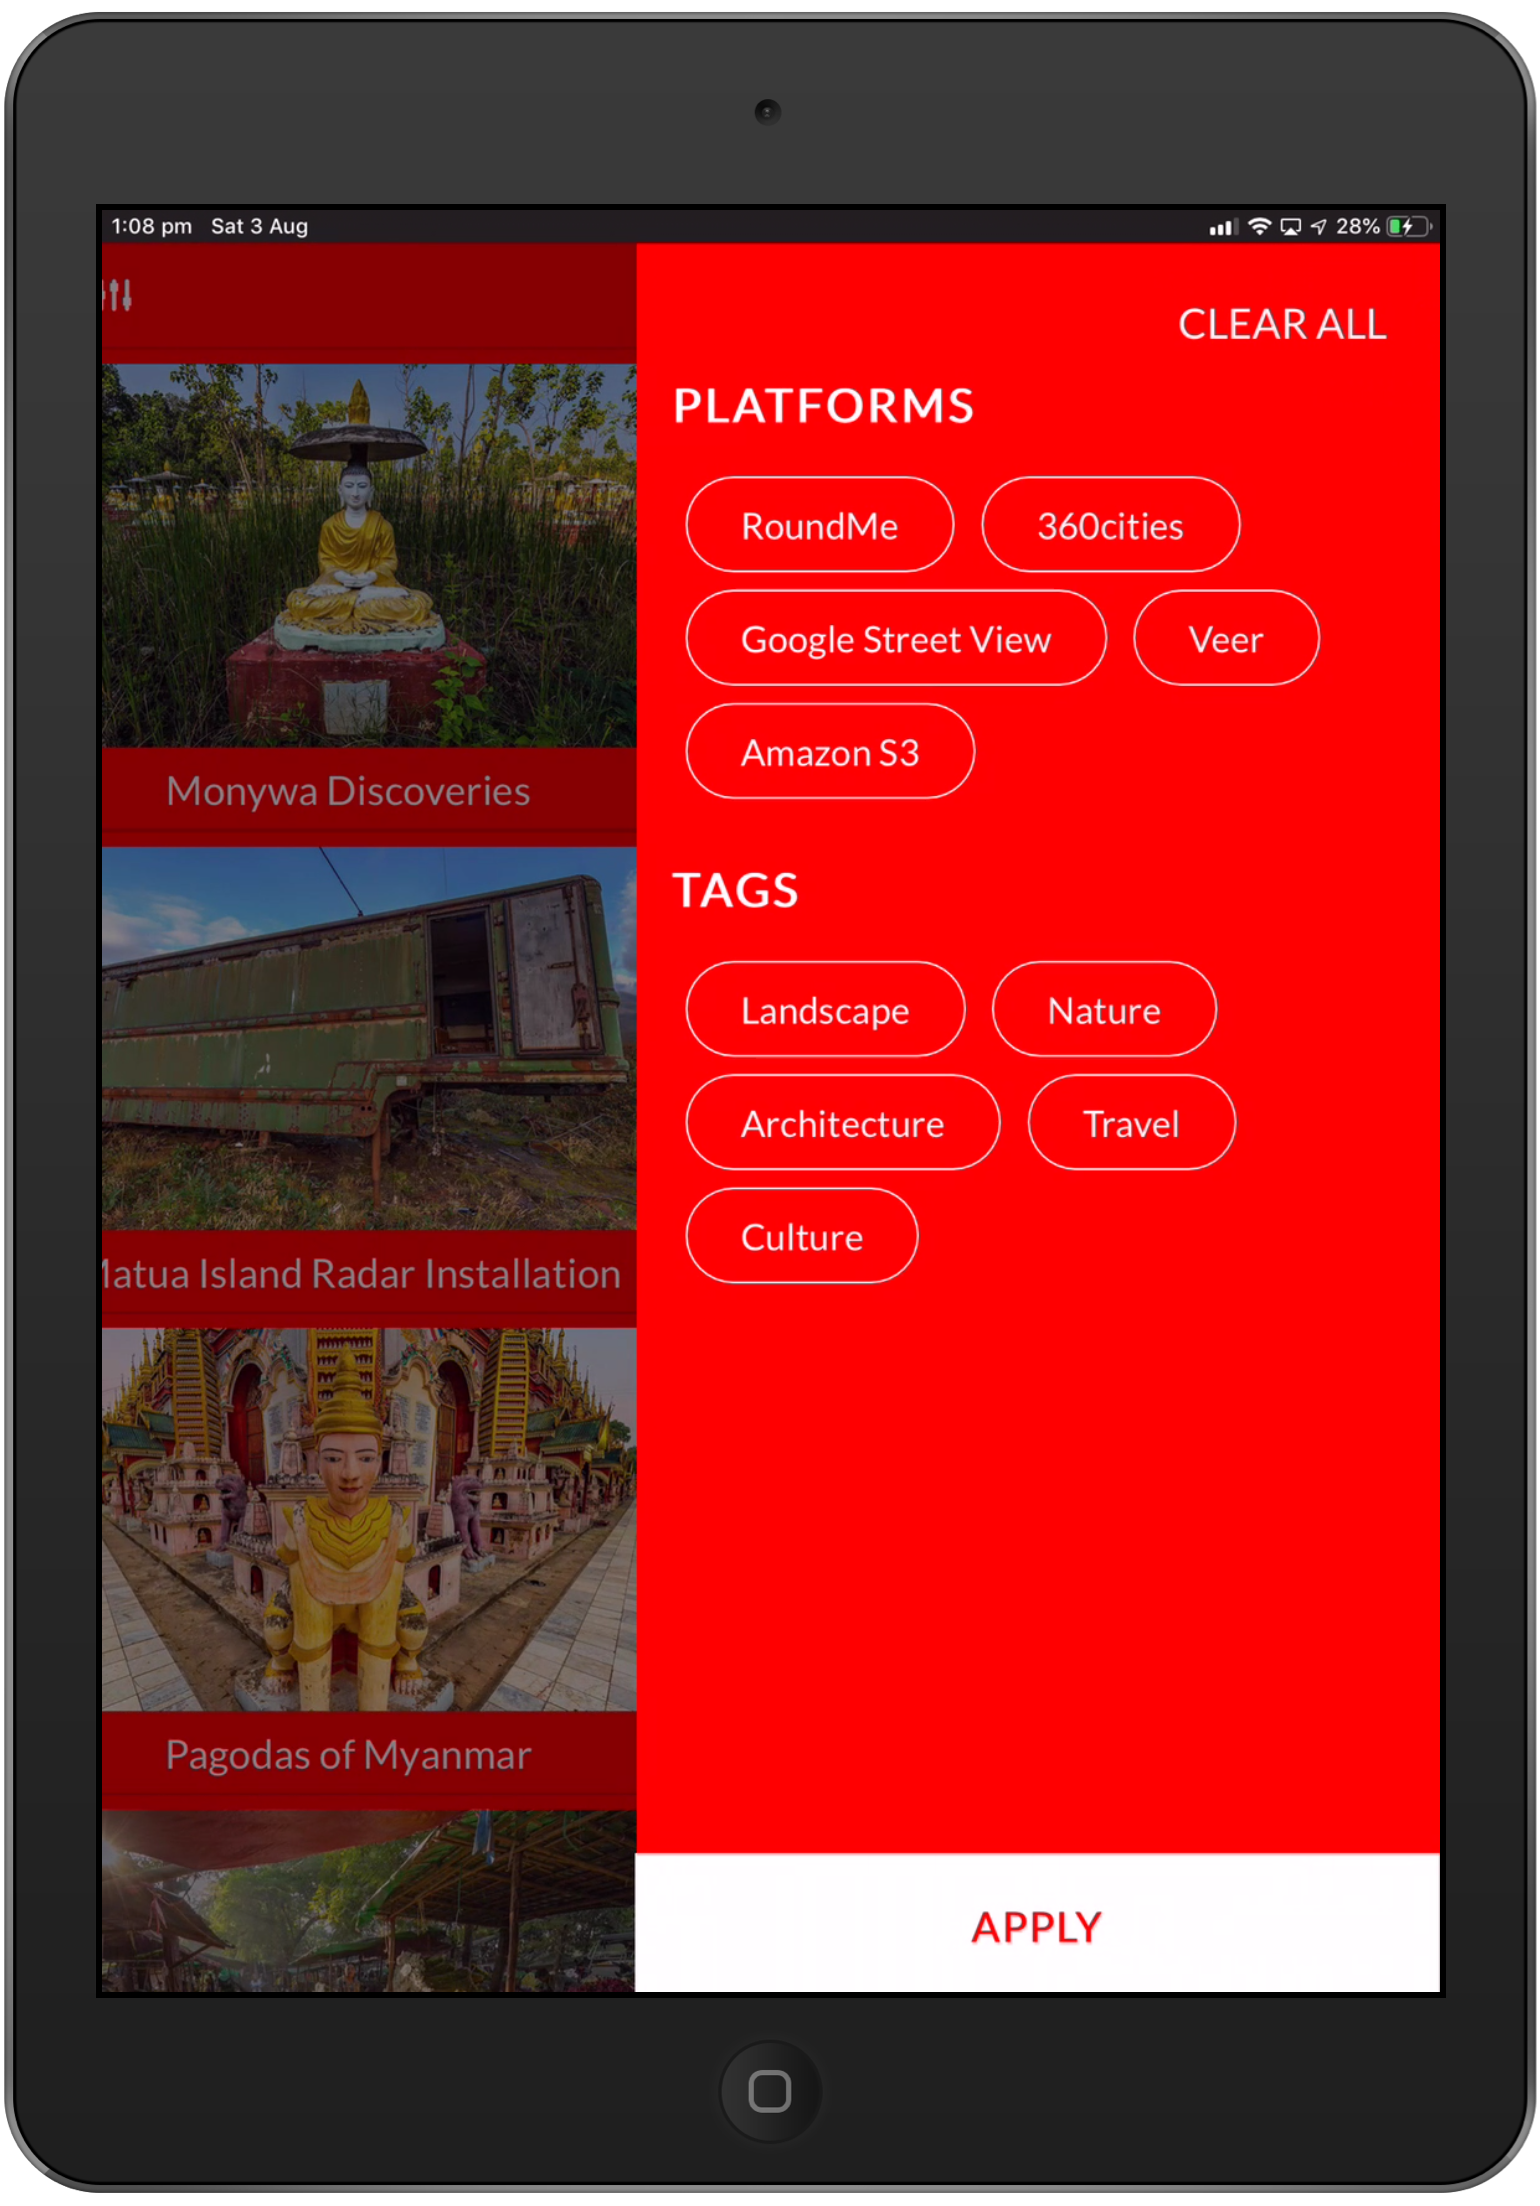 Platform and Tag Filter window